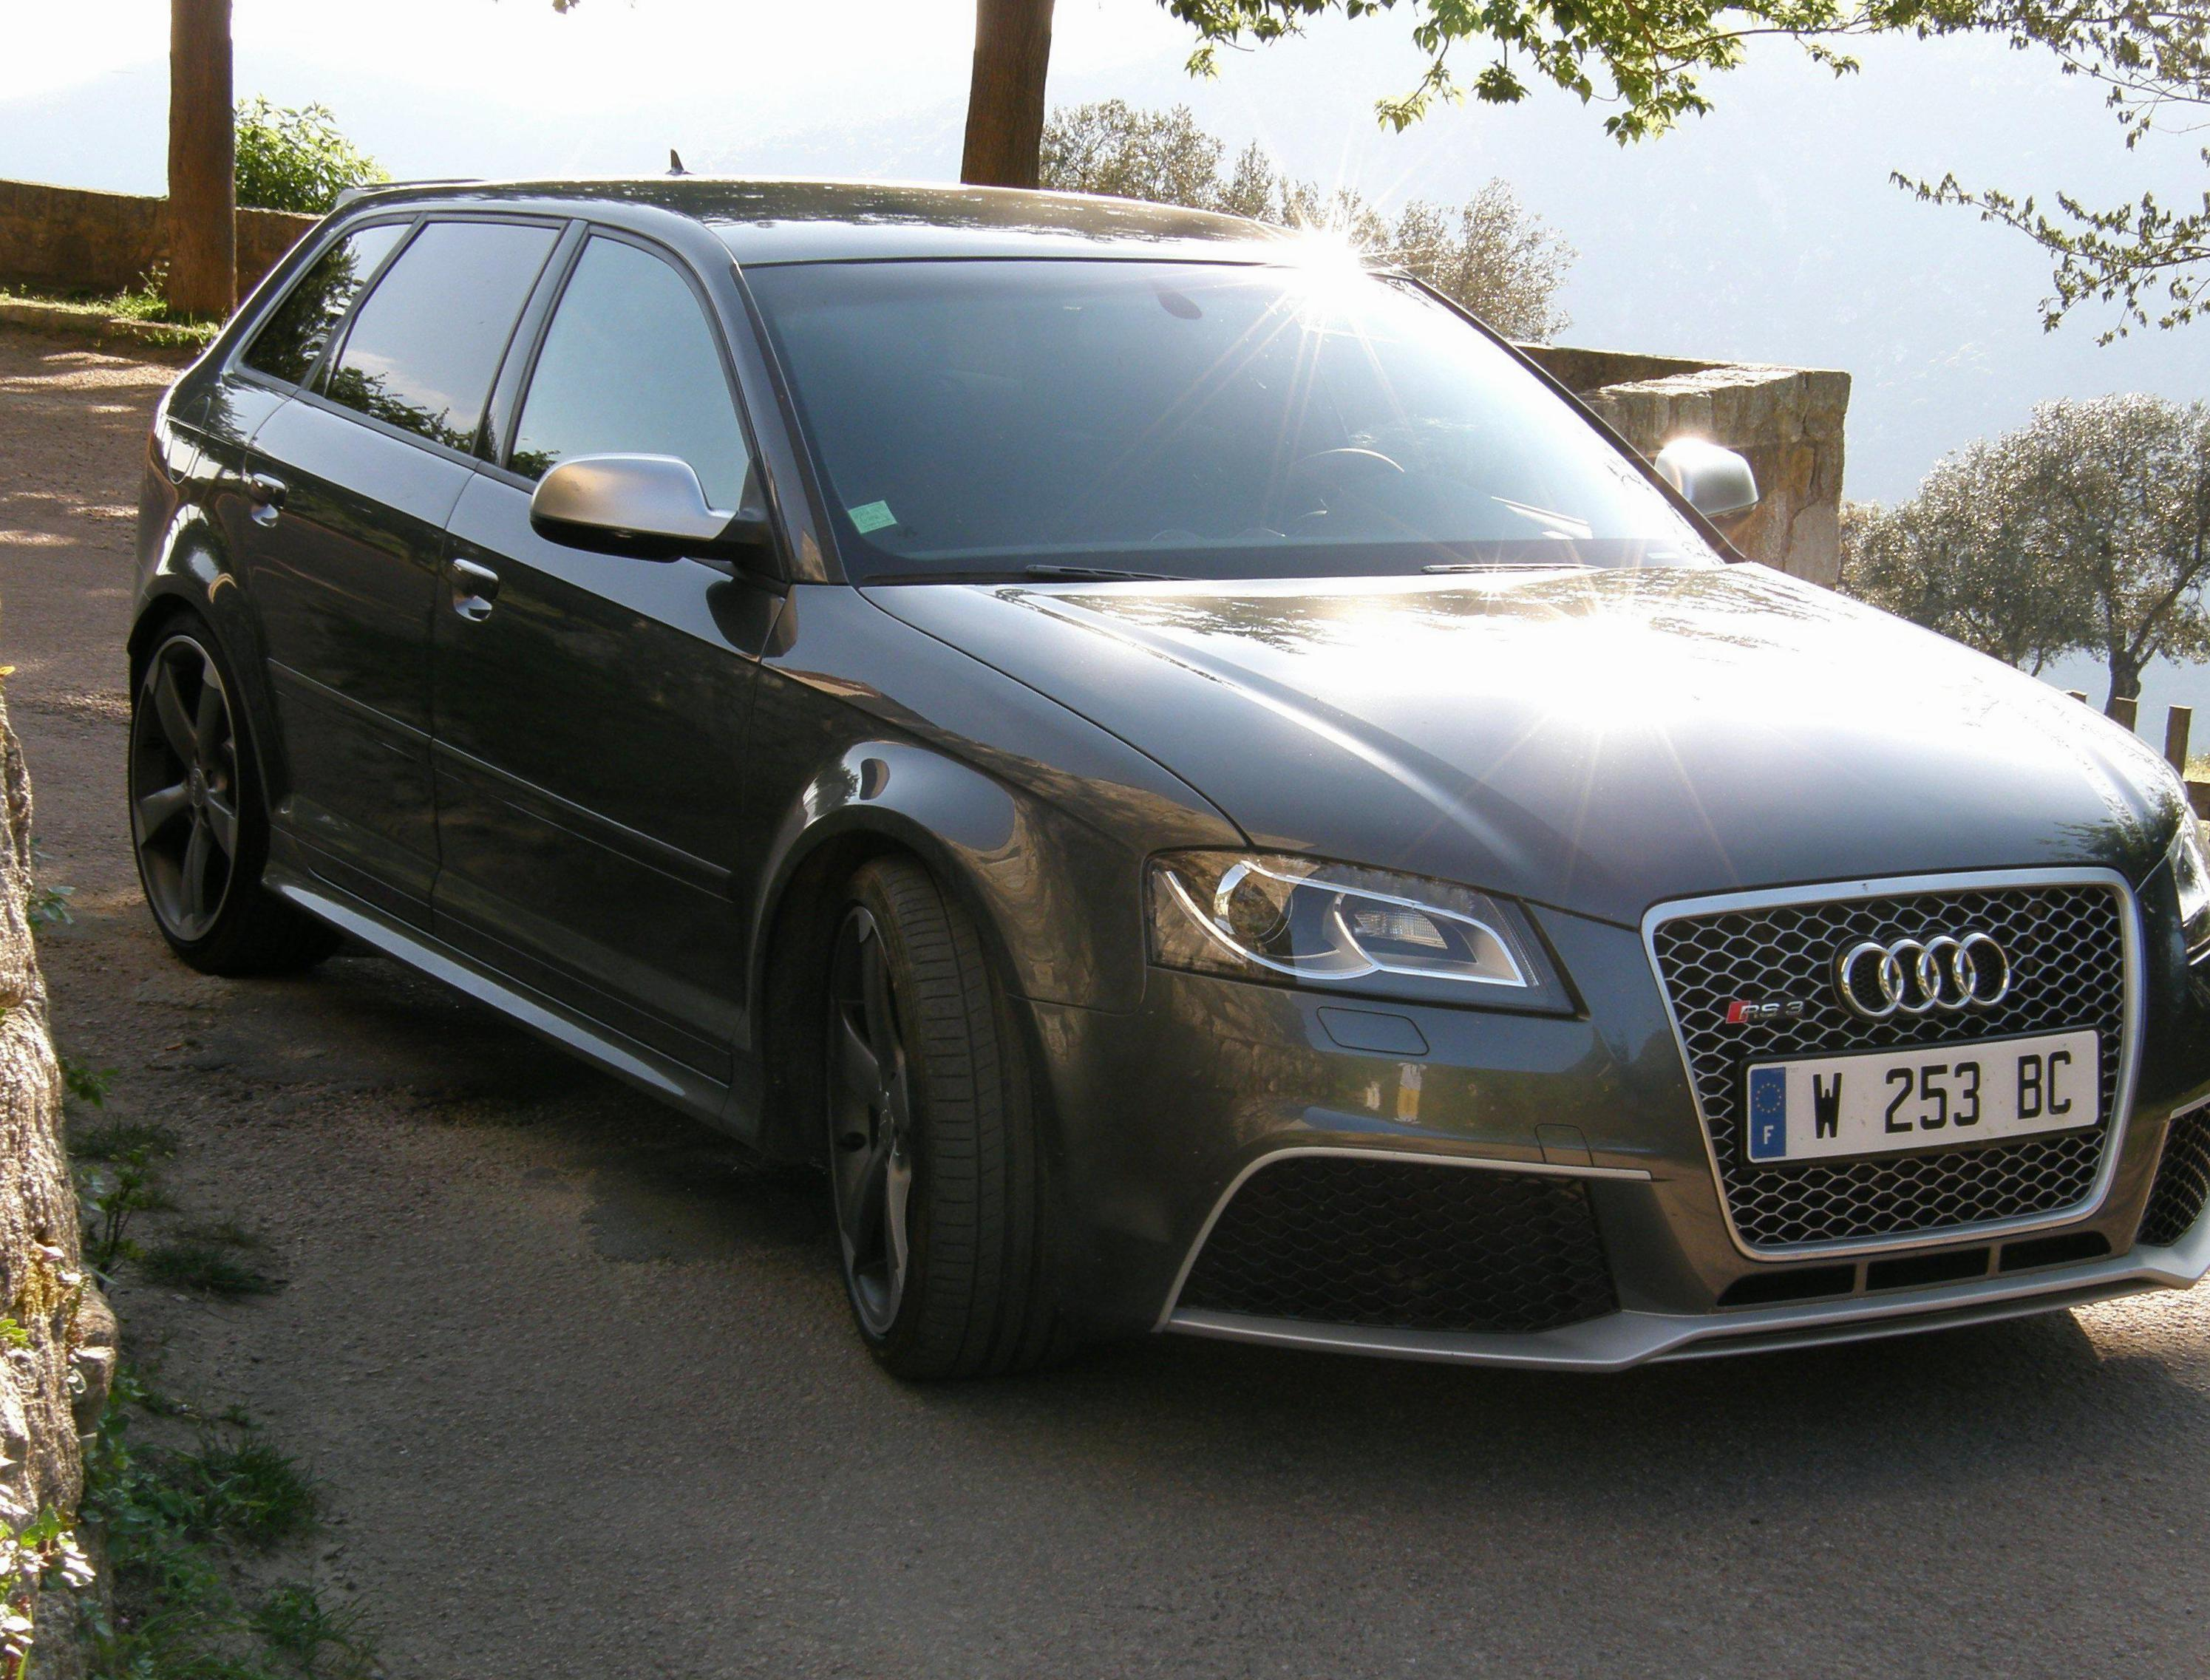 Audi RS3 Sportback for sale minivan